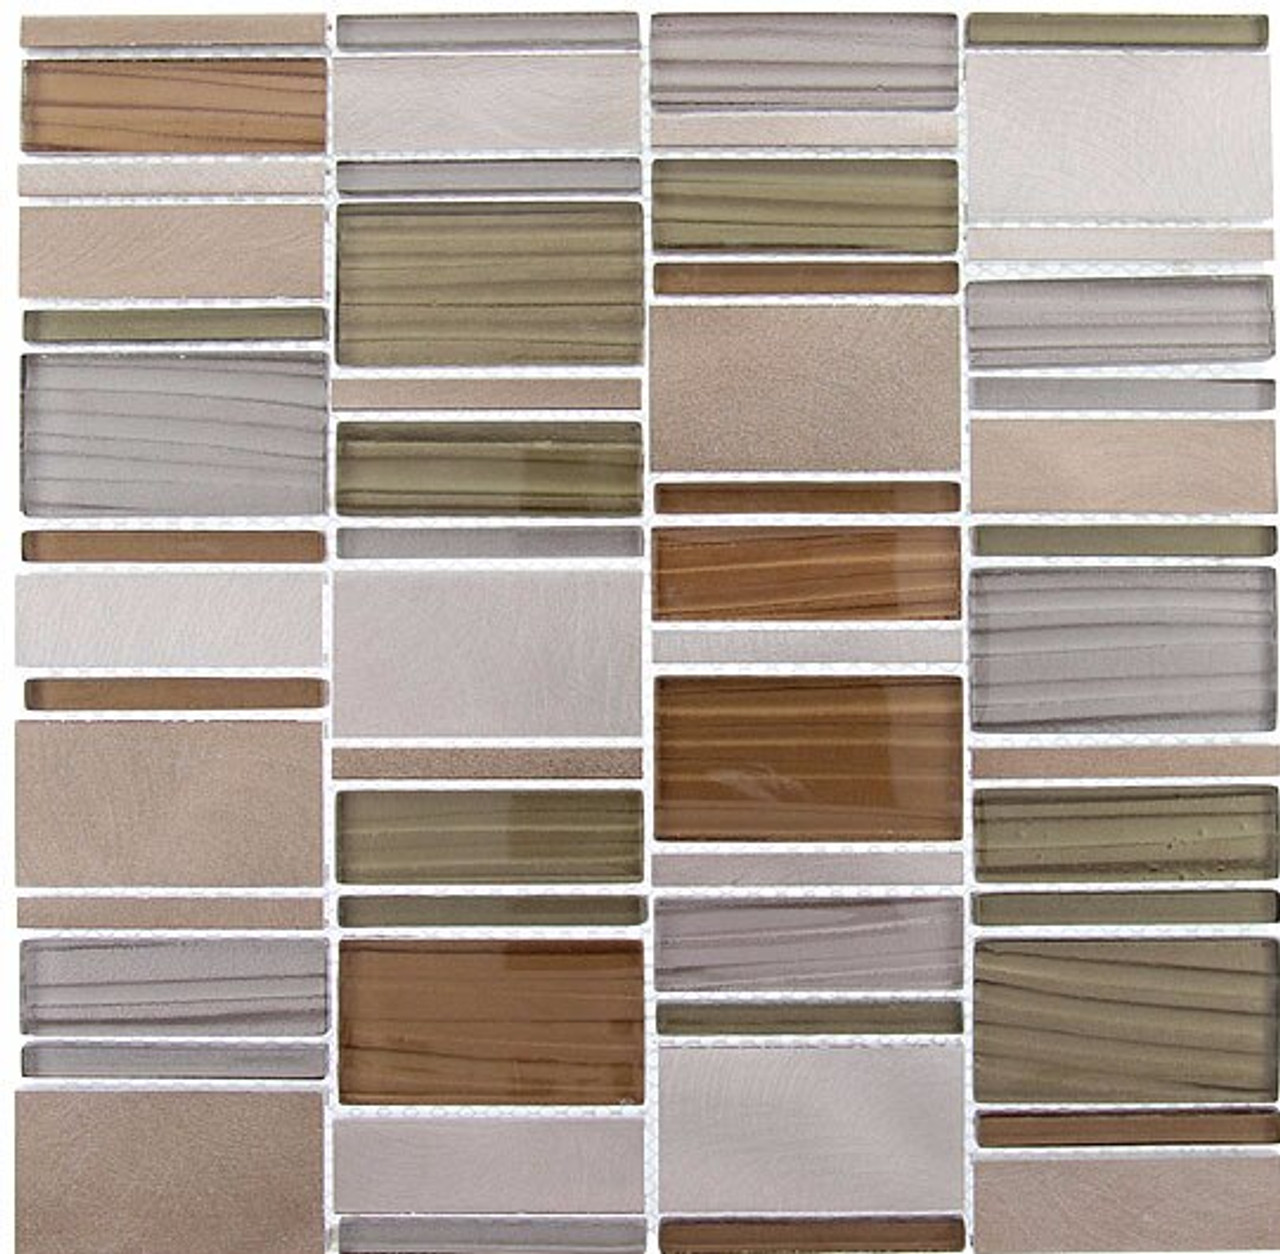 Bella Glass Tiles Corrugated Scapes Series Mustard Field CSS-123